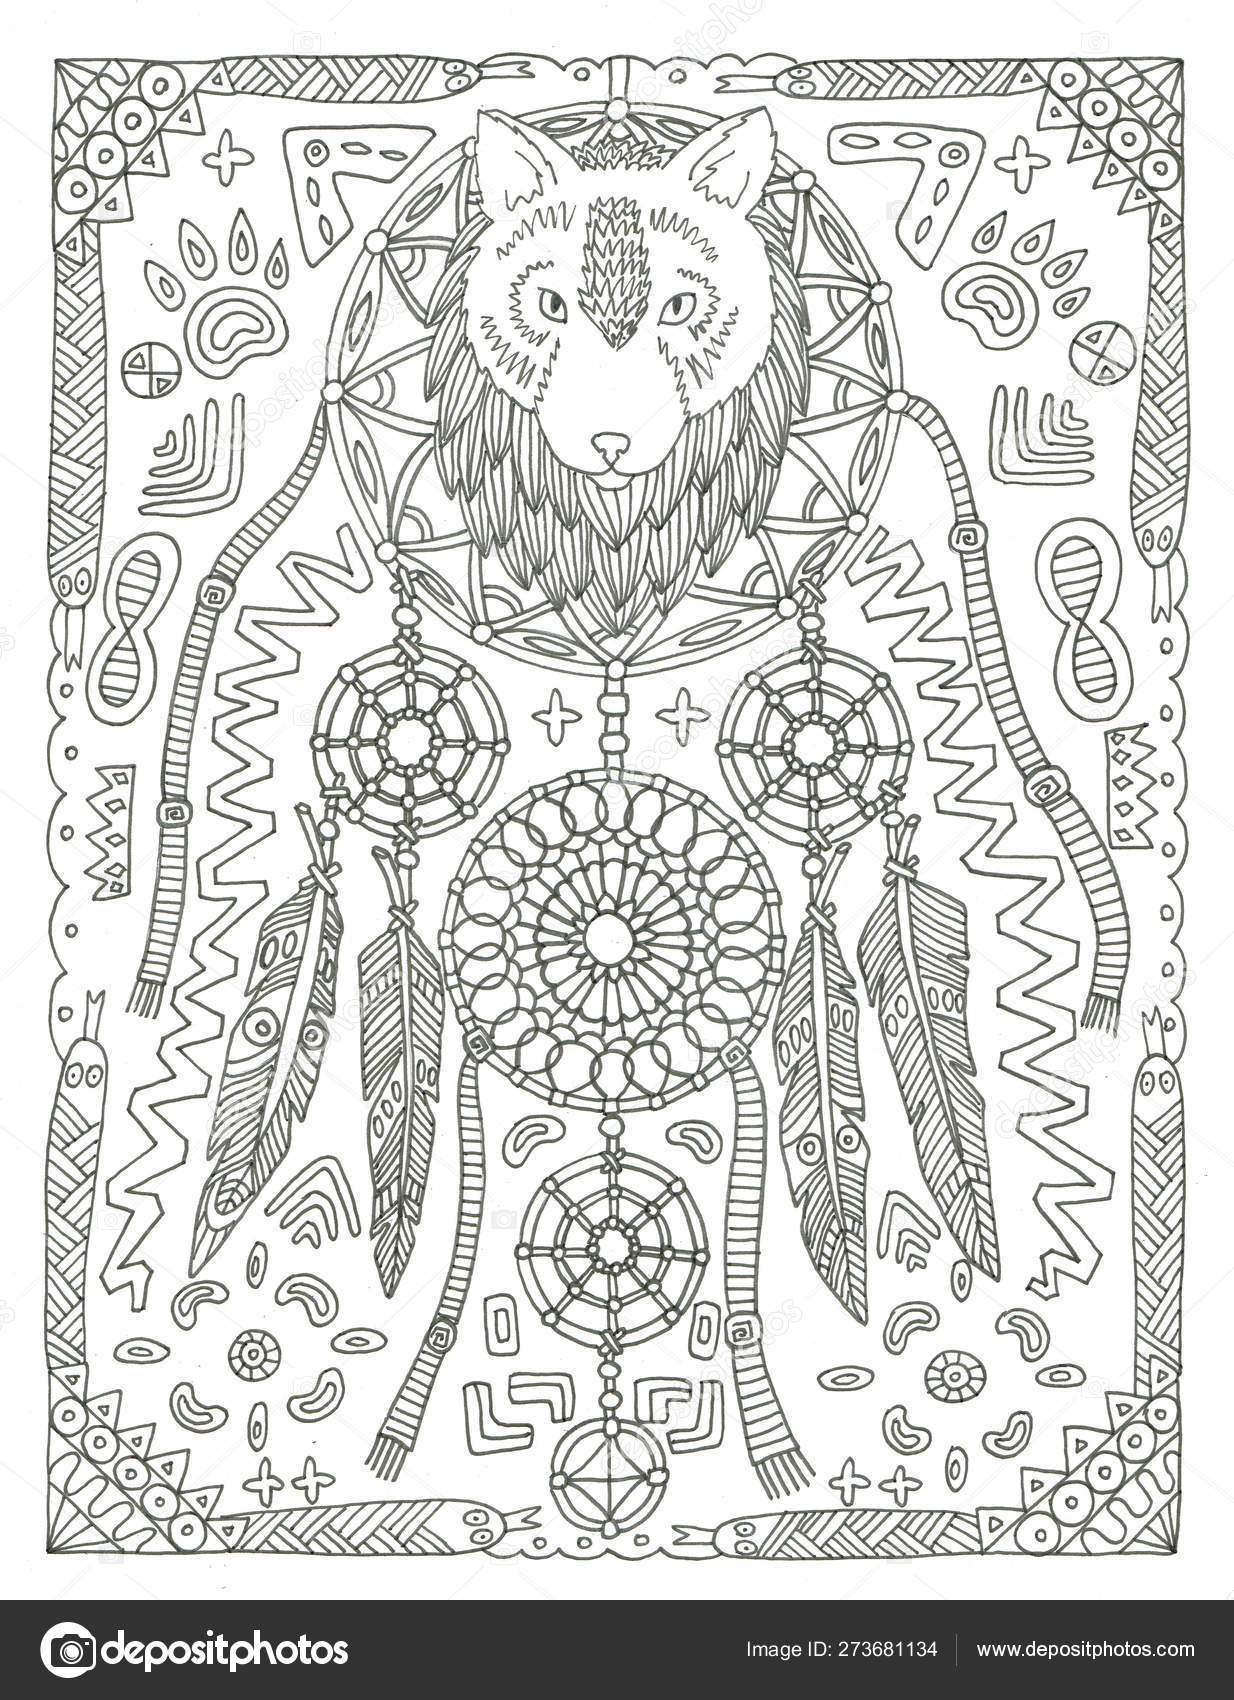 - Dream Catcher Coloring Page Free Hand Drawn Ink Illustration